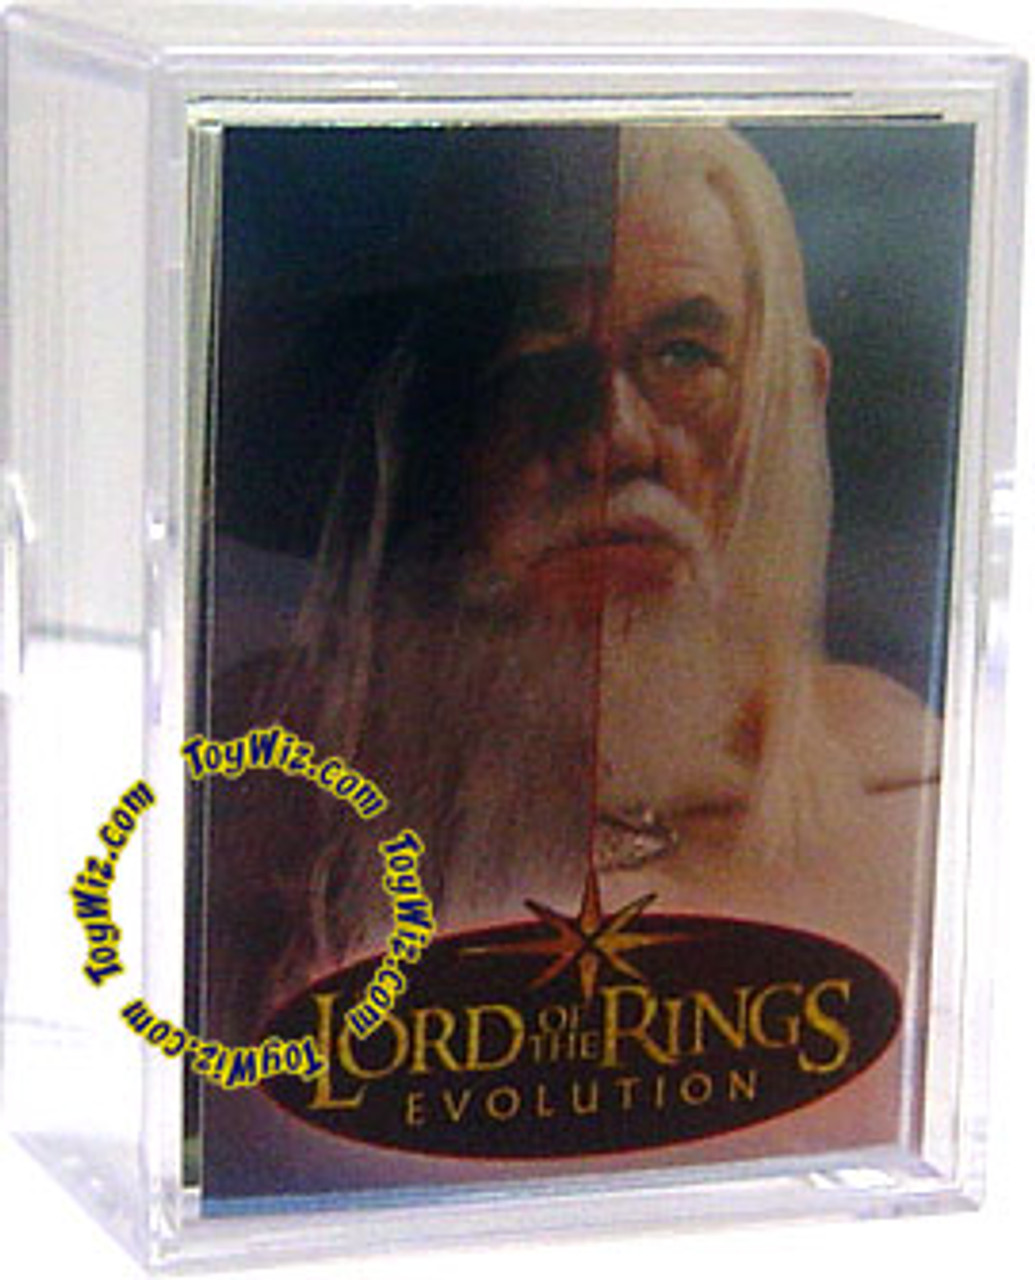 The Lord of the Rings Evolution Trading Card Set